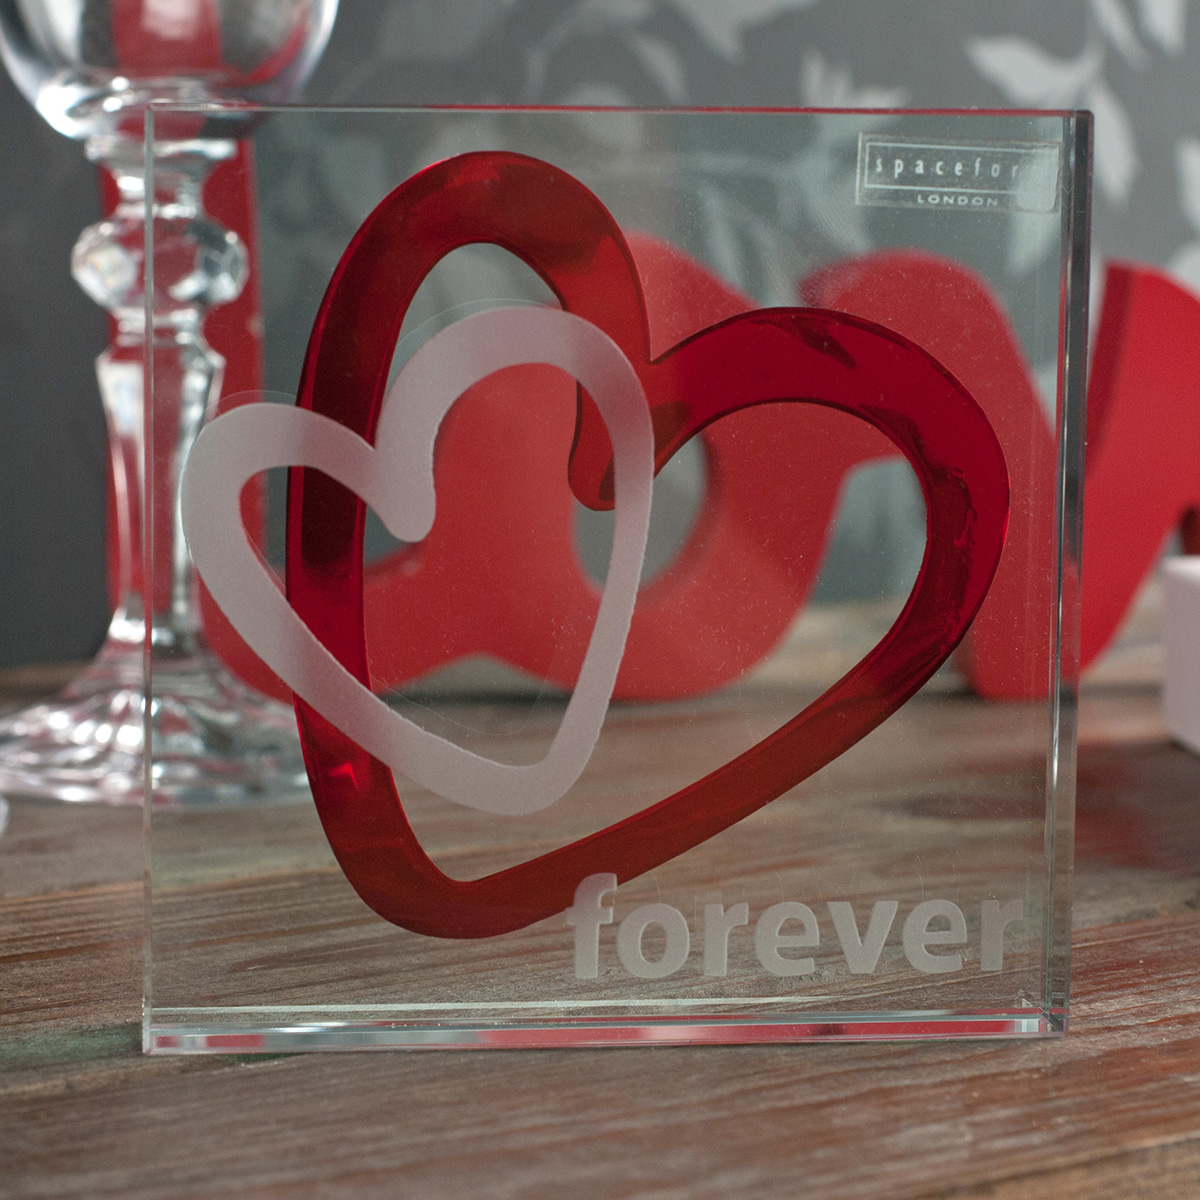 Spaceform Large Paperweight  Forever Heart